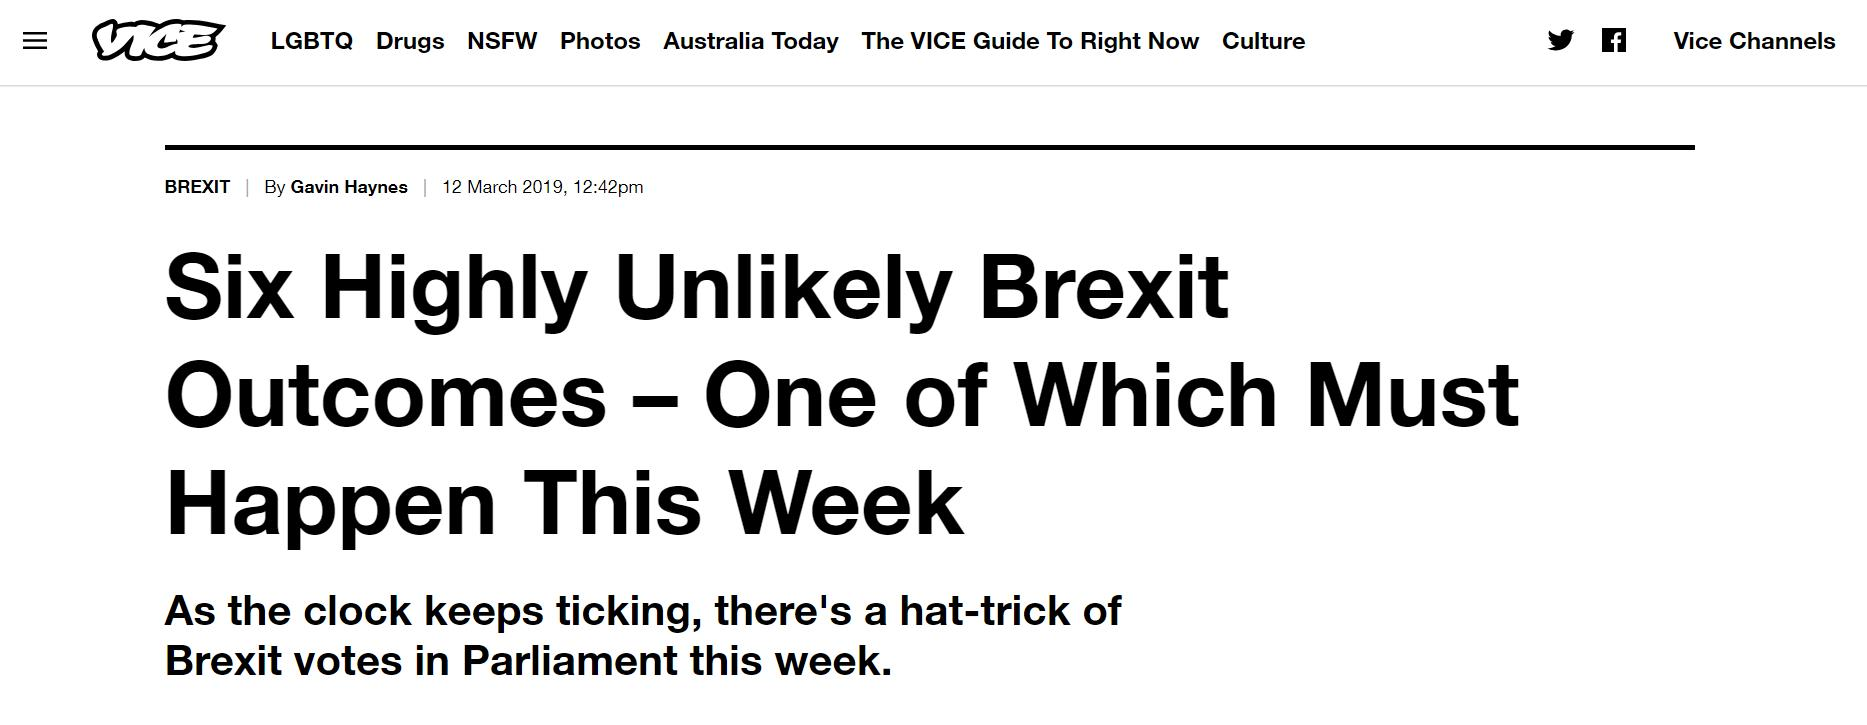 Six Highly Unlikely Brexit Outcomes – One of Which Must Happen This Week